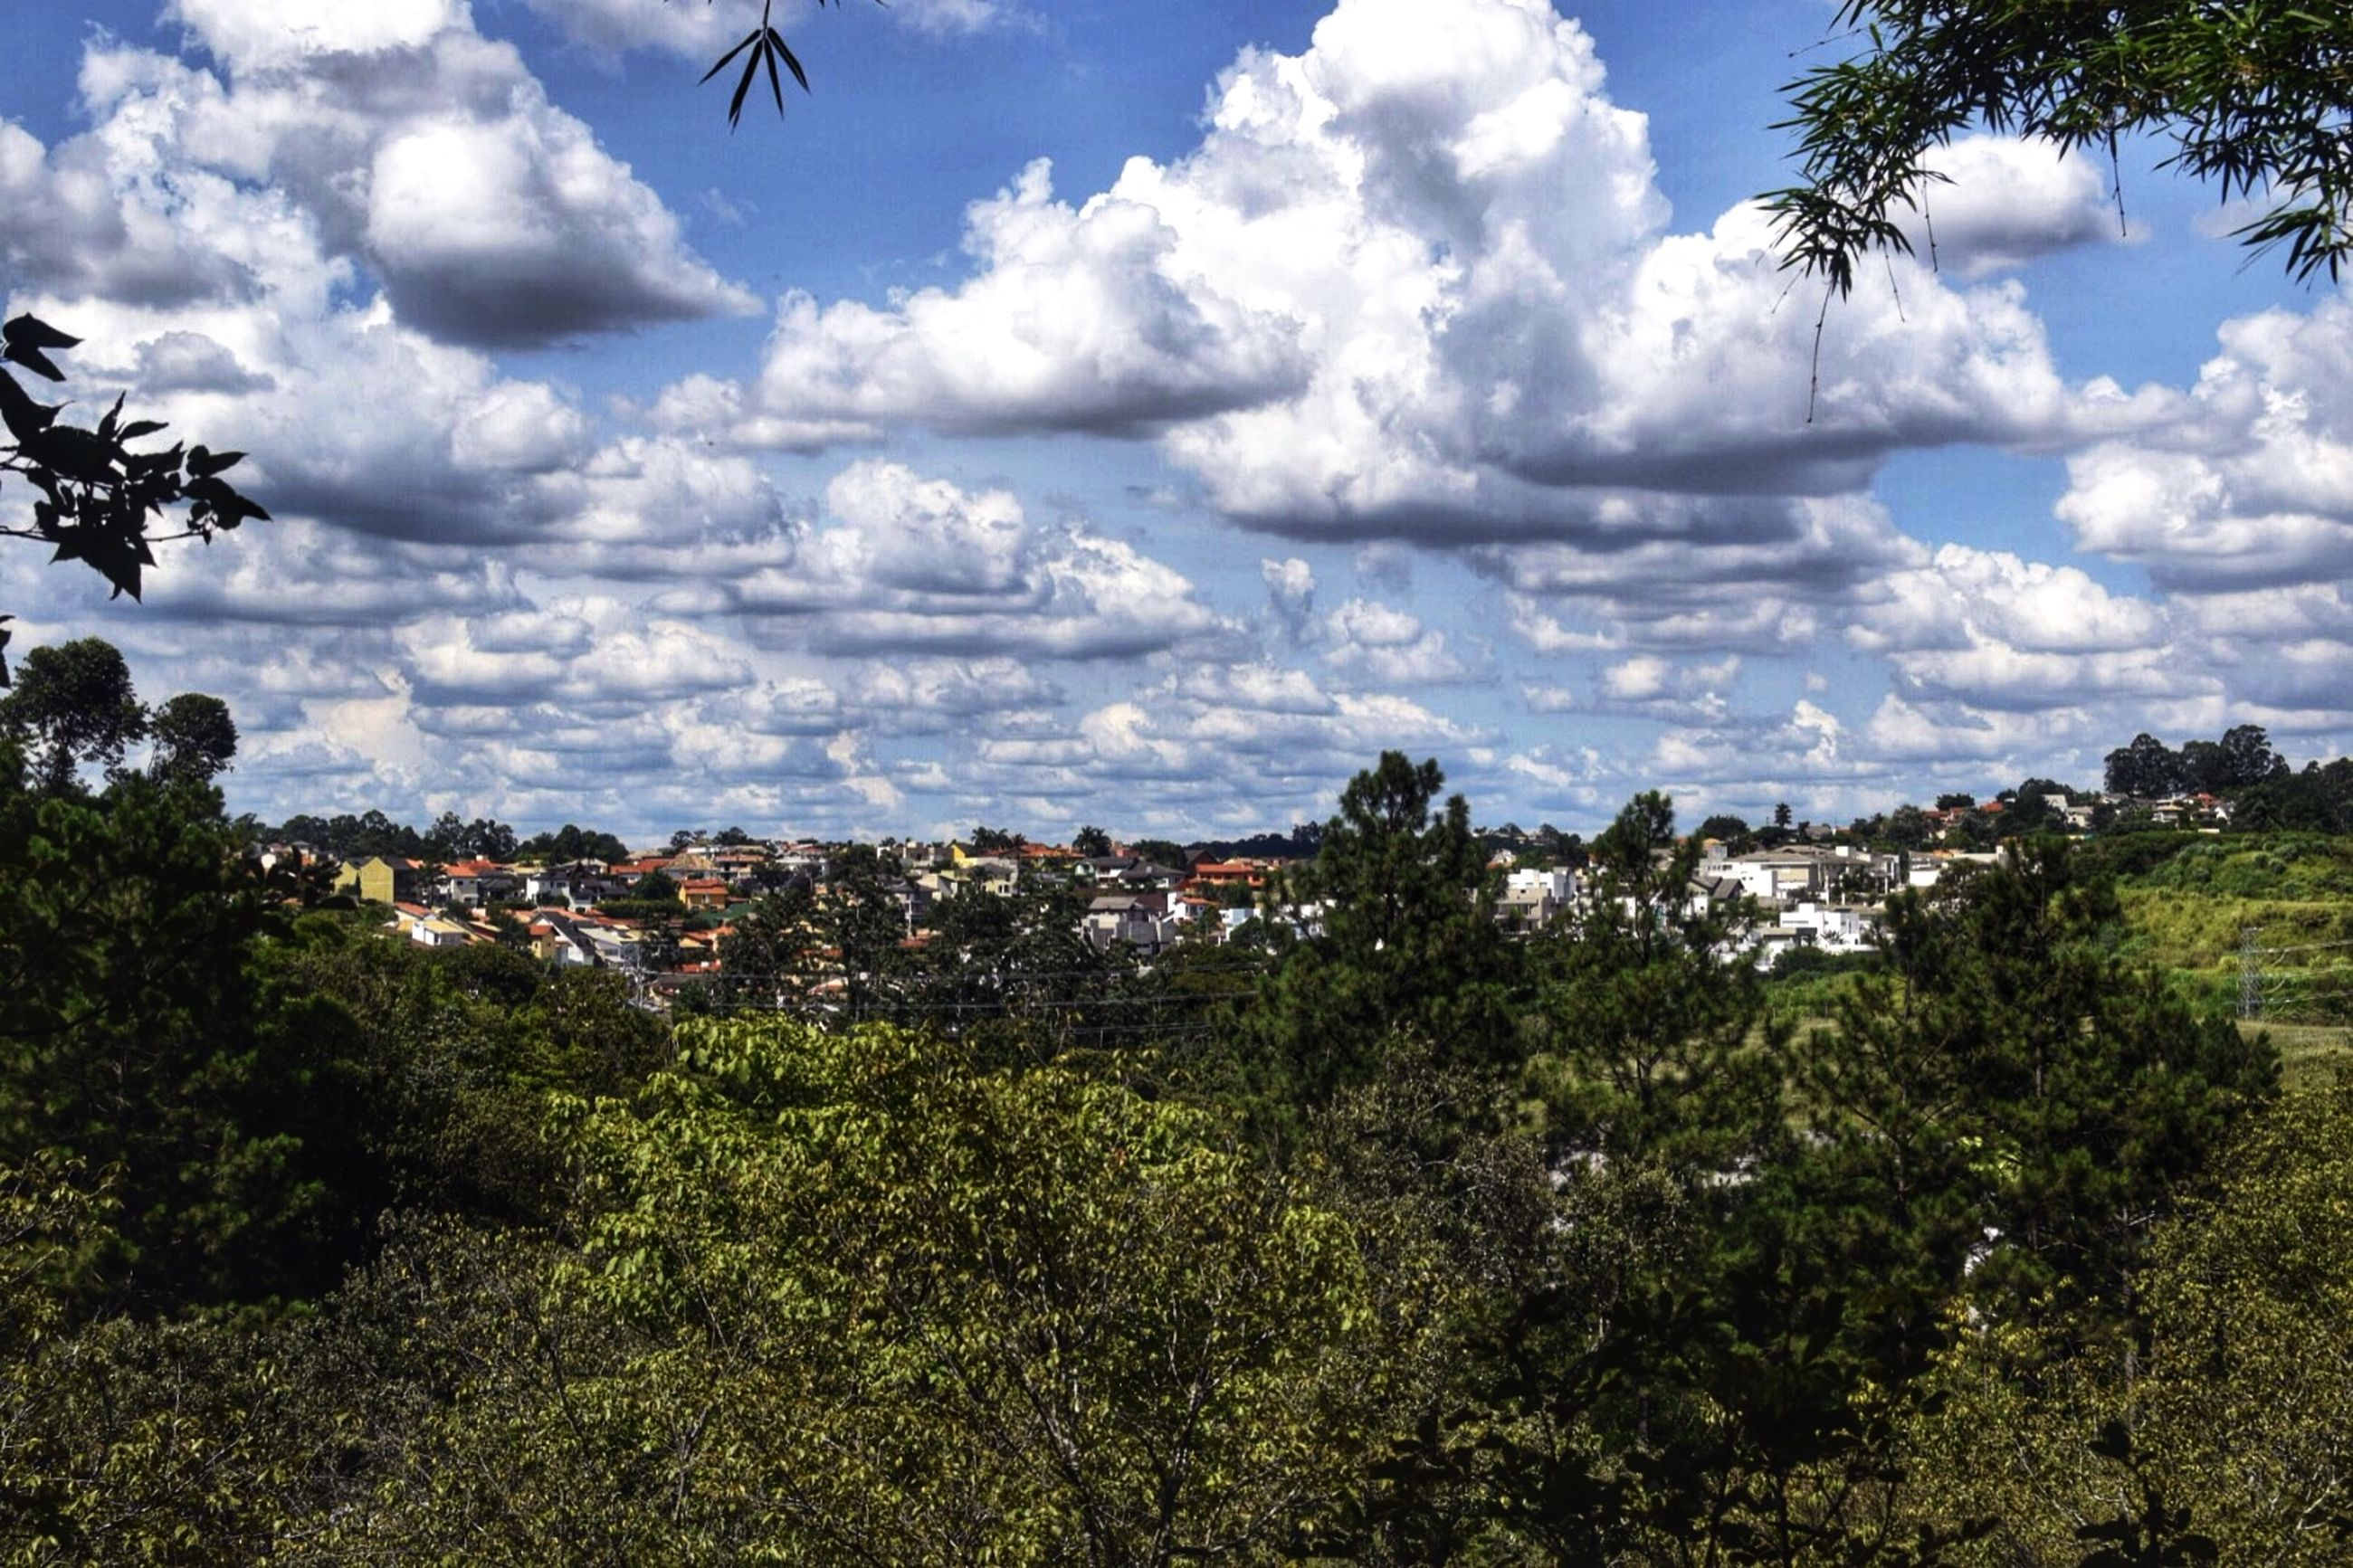 sky, cloud - sky, tree, cloudy, cloud, growth, building exterior, nature, built structure, green color, field, plant, beauty in nature, architecture, day, landscape, tranquility, tranquil scene, outdoors, scenics